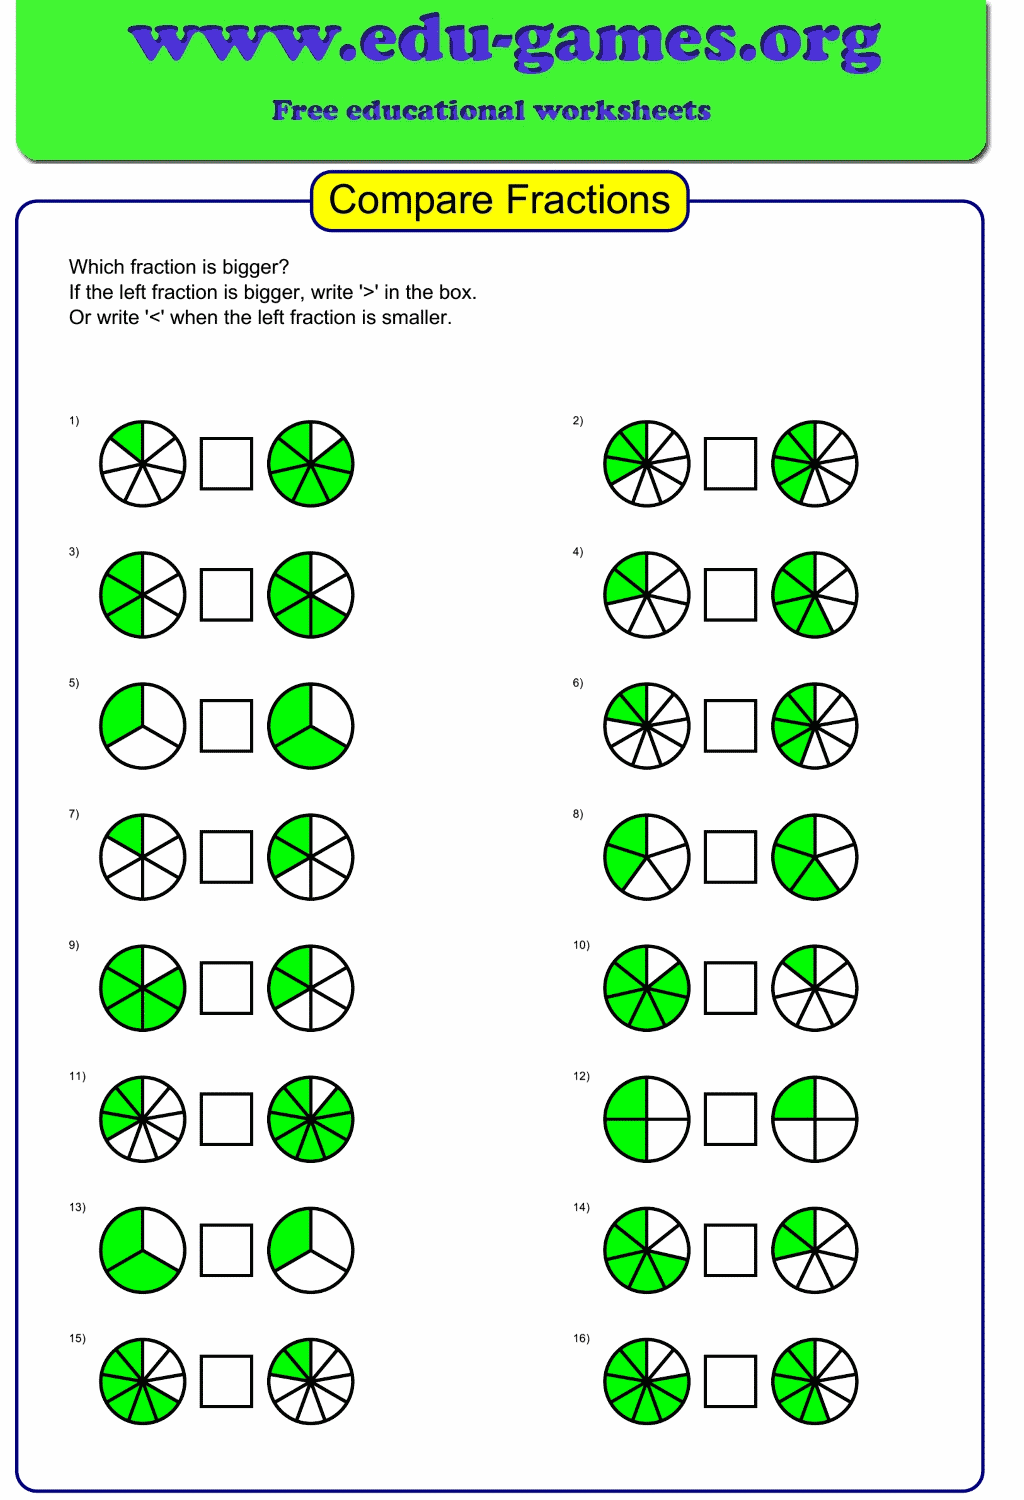 Compare Fractions The Fractions Are Showed As A Pie You